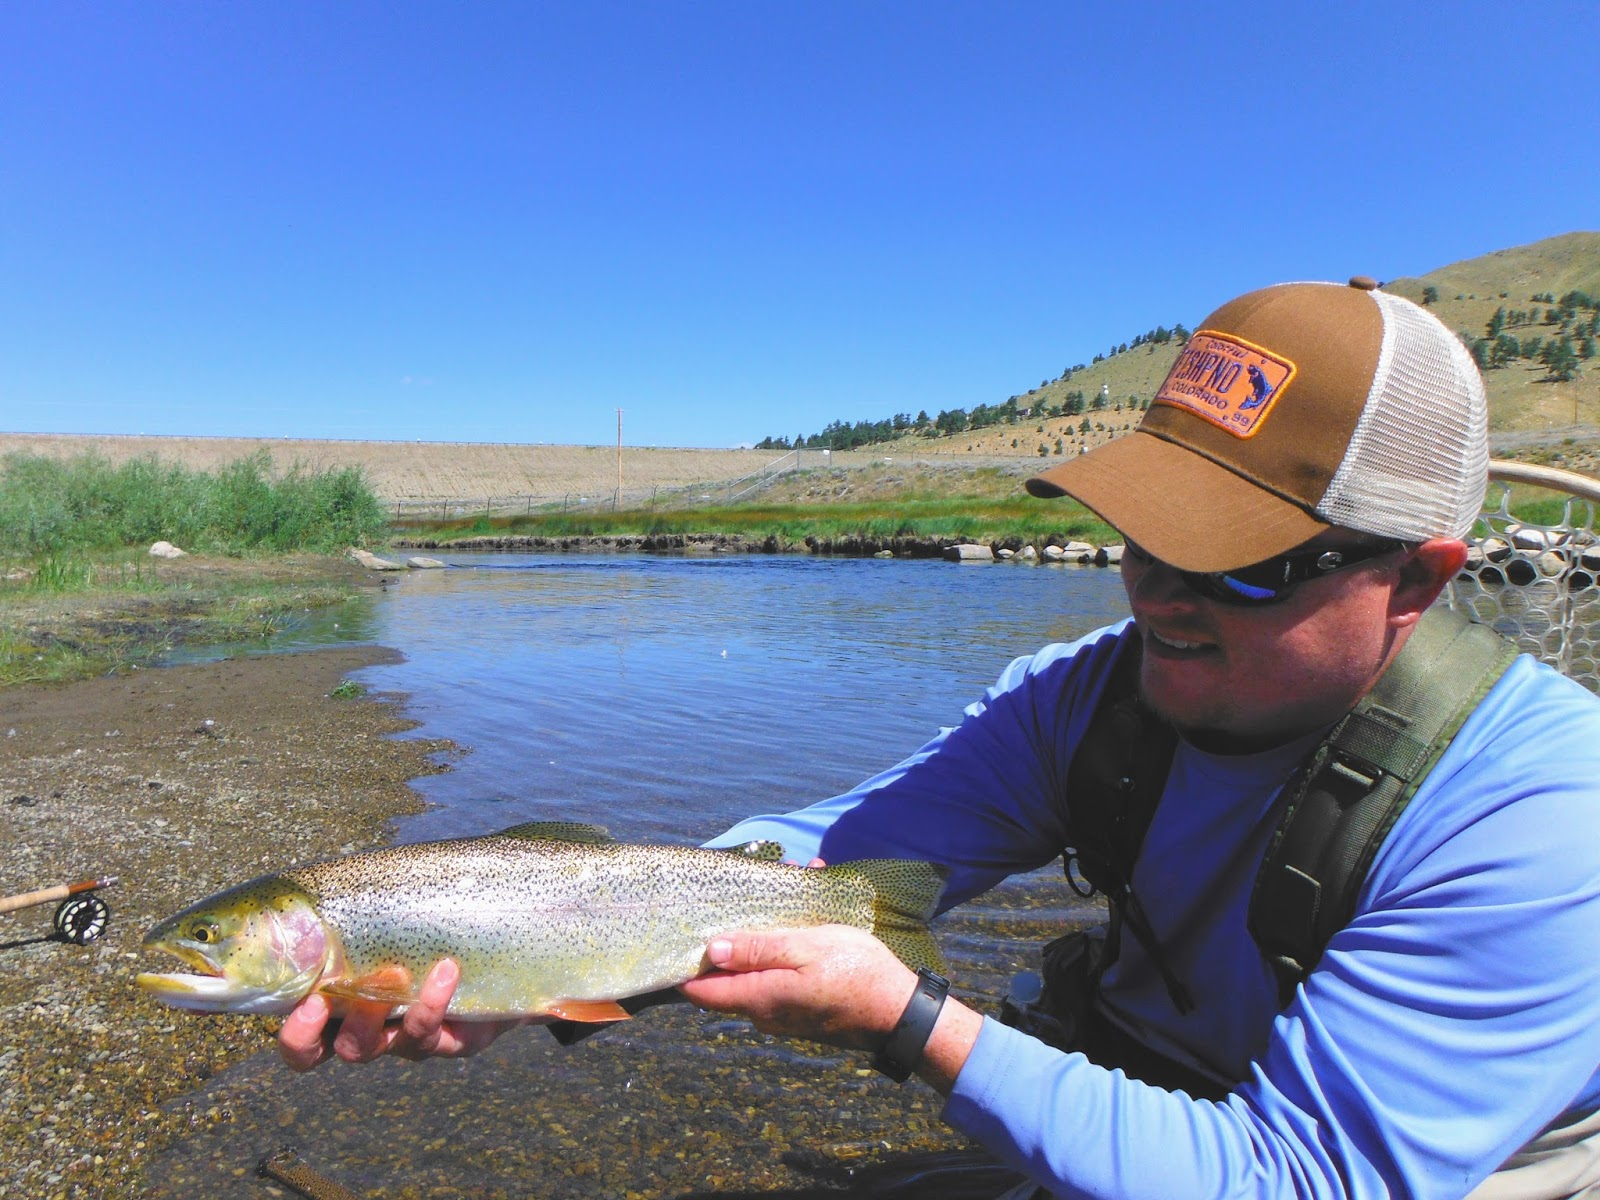 Jamie 39 s fly fishing journal august 2015 for Fly fishing journal